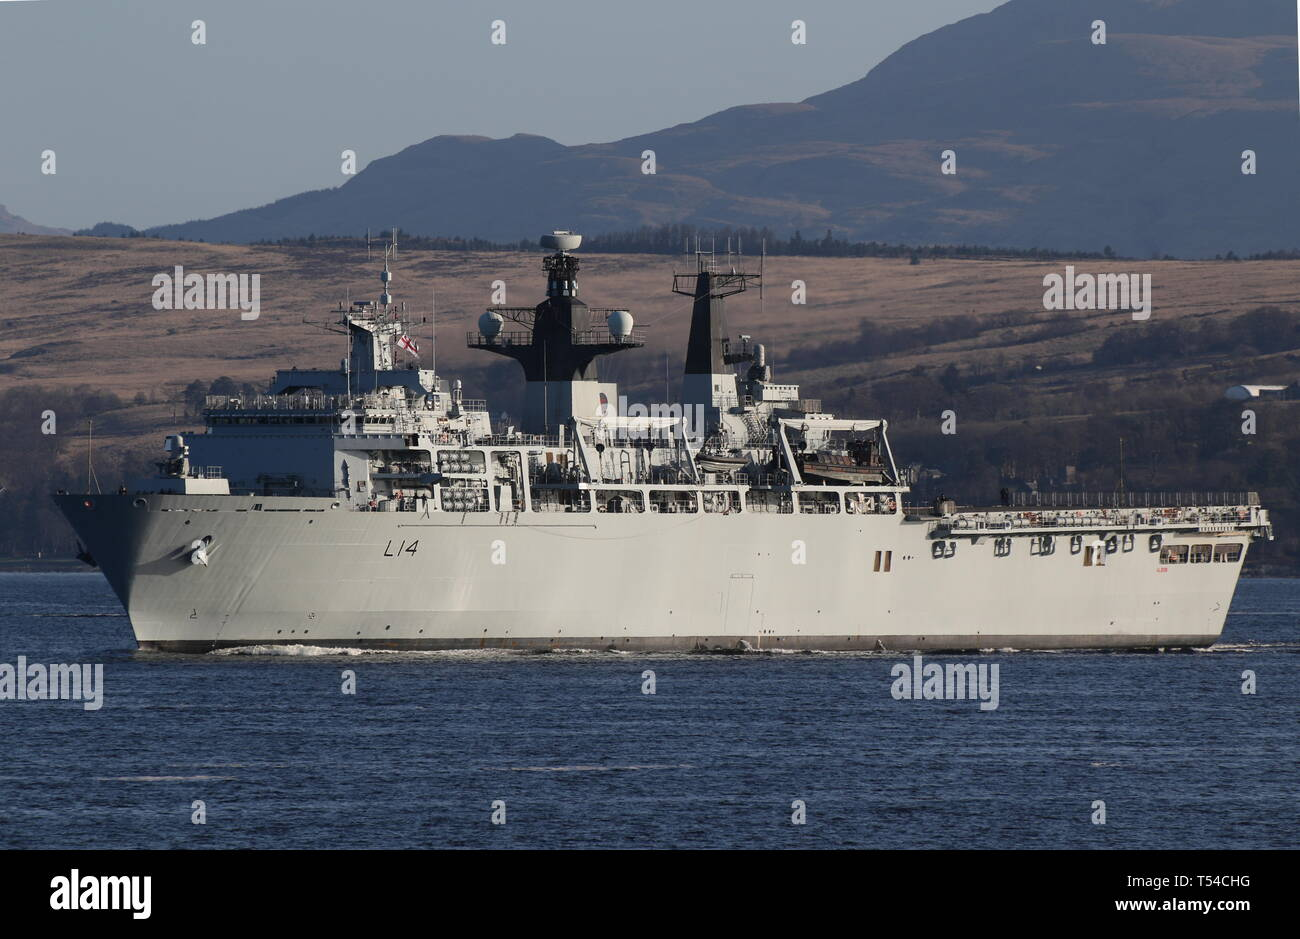 HMS Albion (L14), an Albion-class amphibious assault ship operated by the Royal Navy, passing Gourock at the start of Exercise Joint Warrior 19-1. Stock Photo